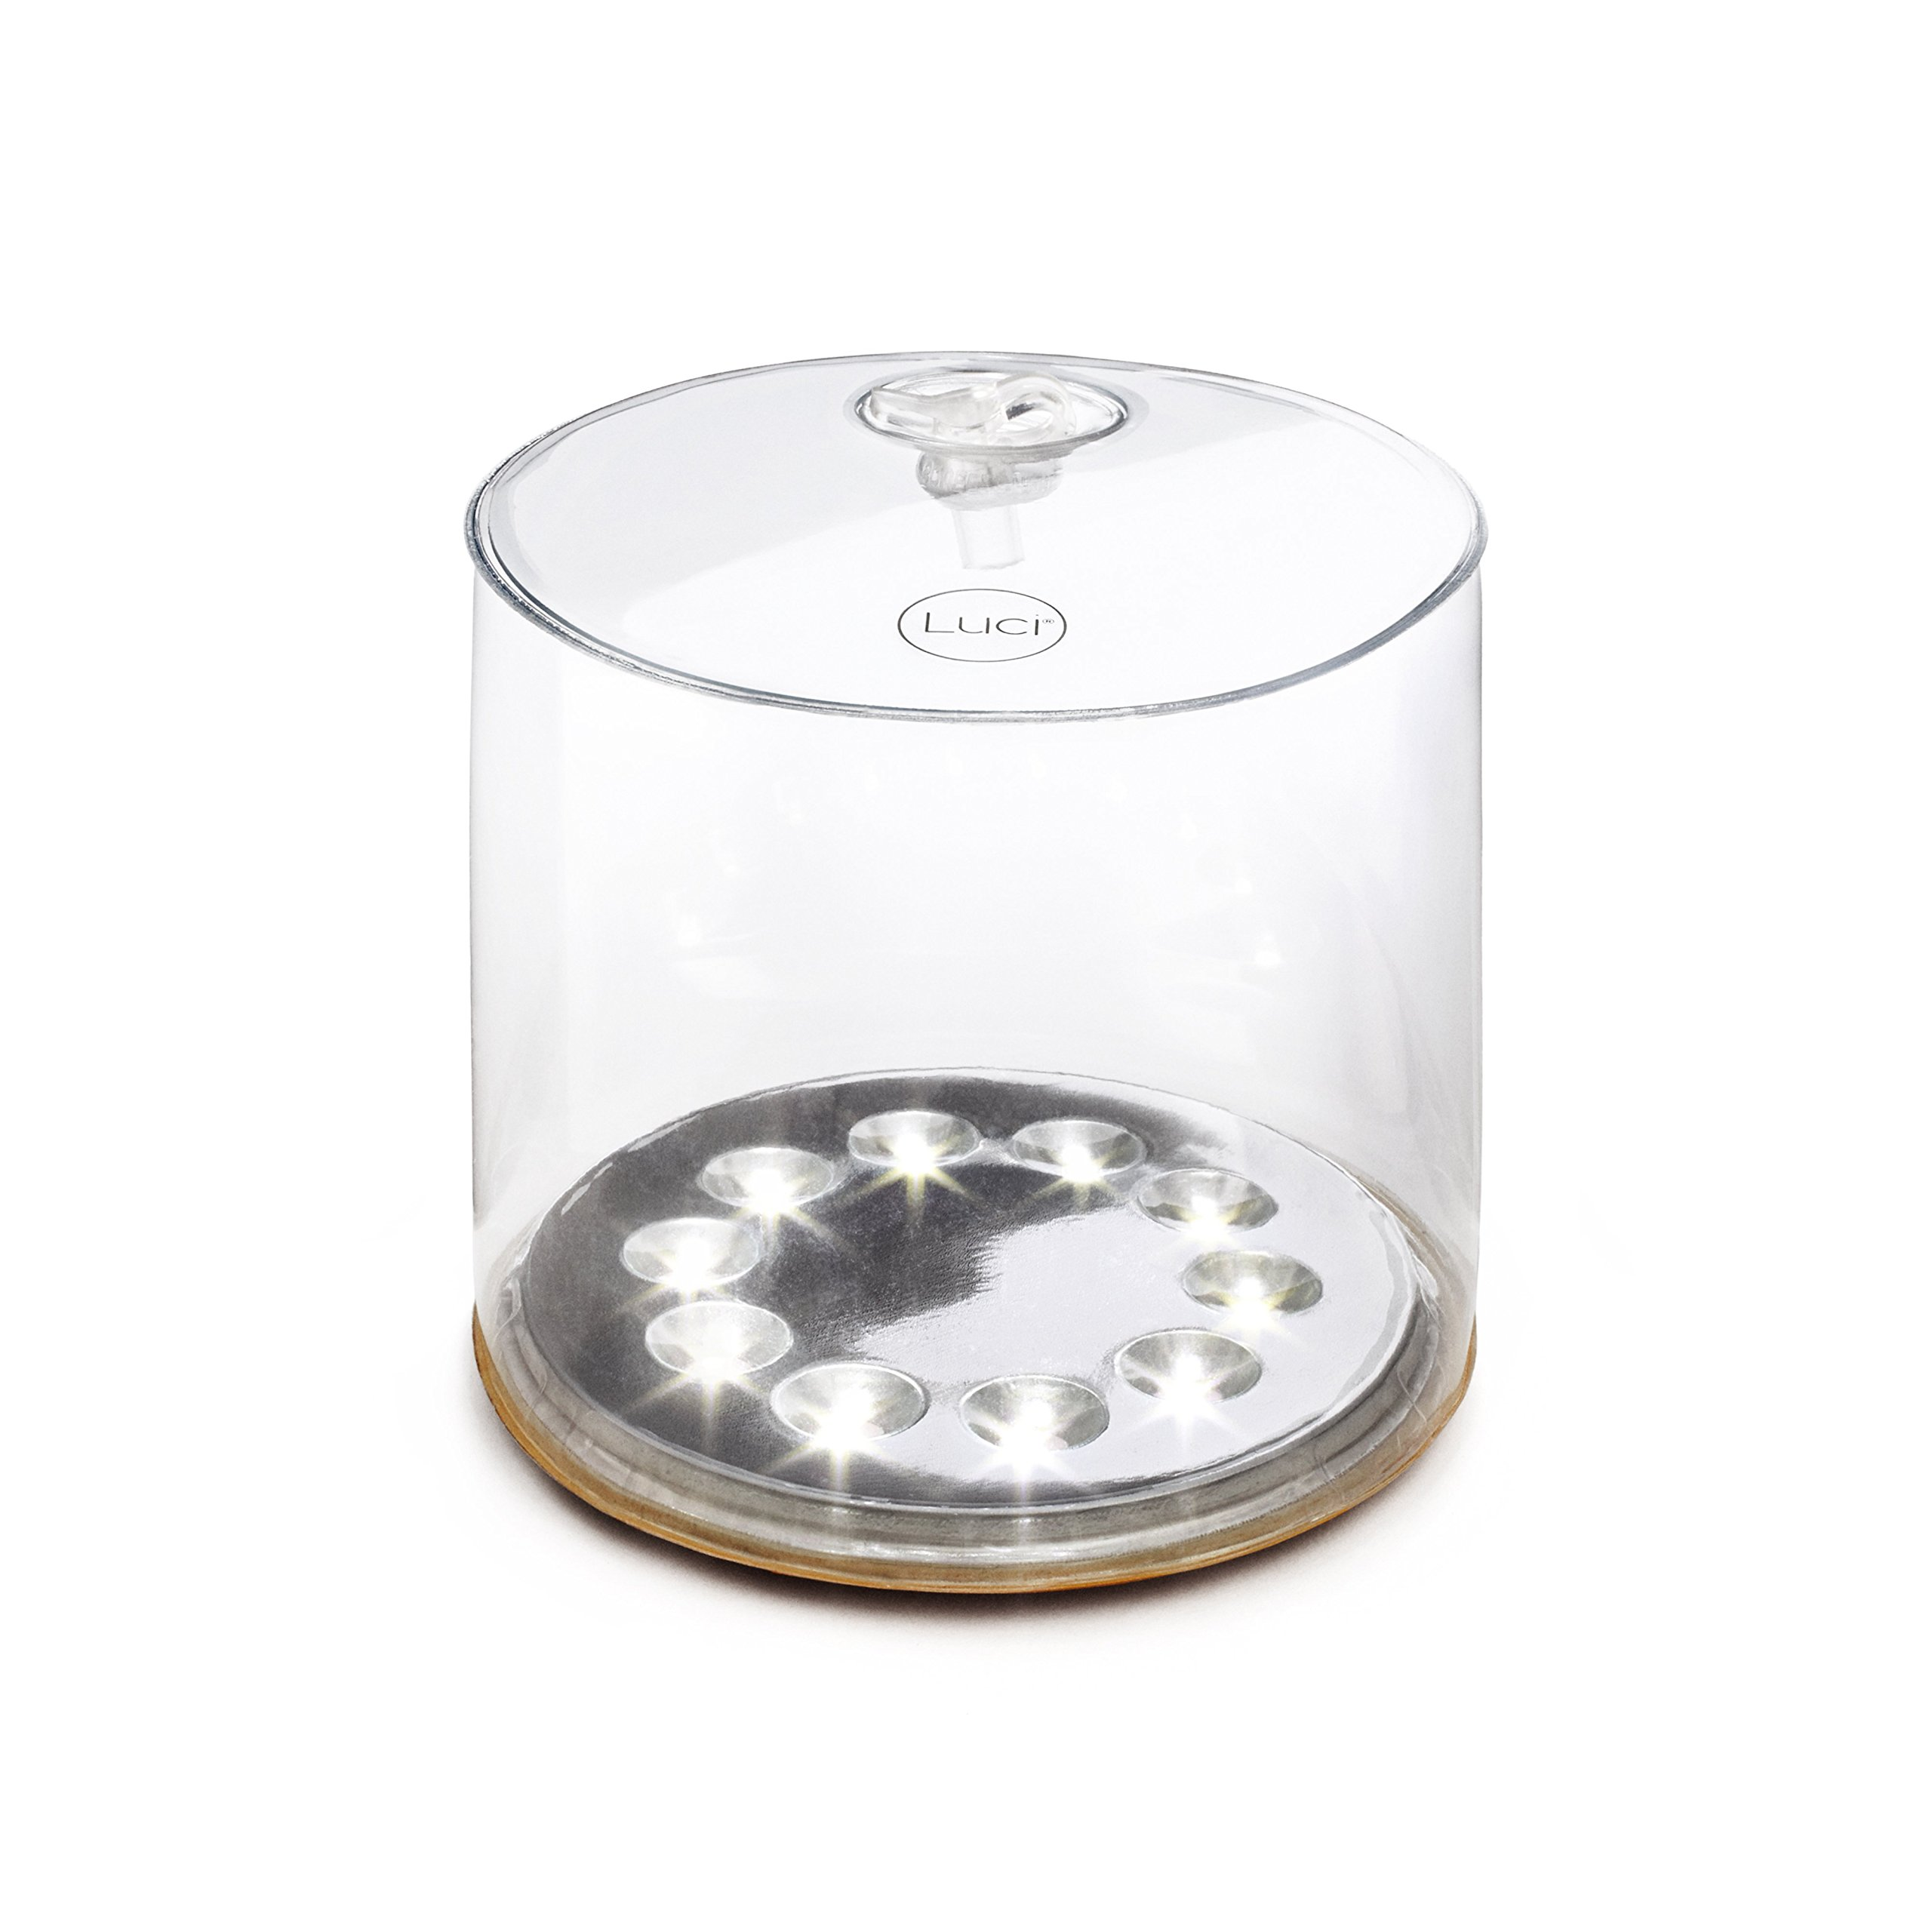 MPOWERD Luci - The Original Inflatable Solar Light, Clear Finish by MPOWERD